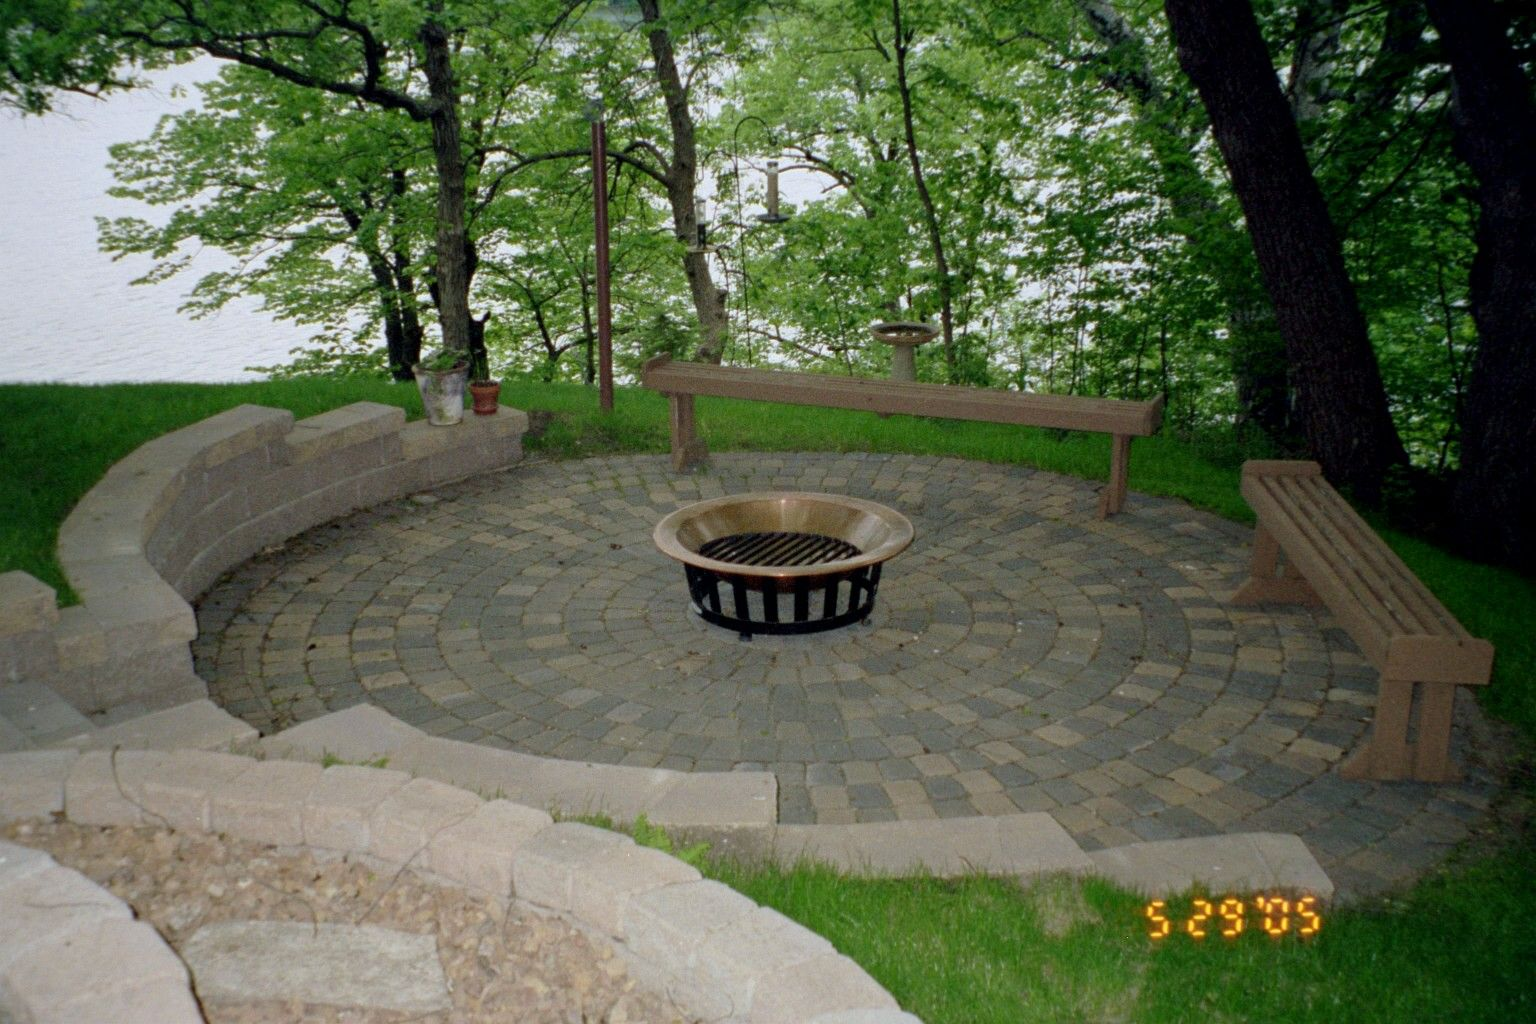 brick paver walkway designs limestone ep henry cobblestones brick slate paver travertine pavers joes board pinterest paver patio designs patio